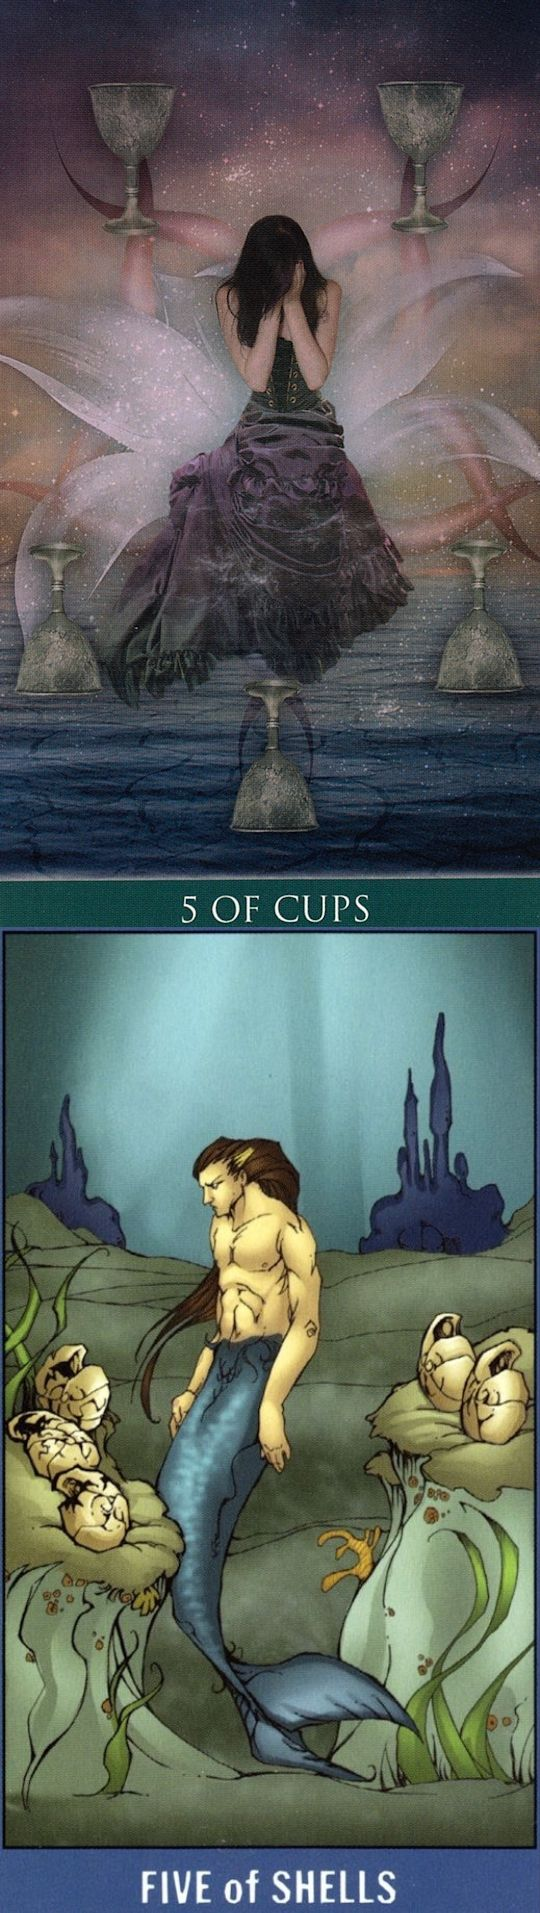 Five of Cups: loss and acceptance (reverse). Thelema Tarot deck and Undersea Tarot deck: free online tarot card reading lotus, tarot en espanol and tarot del fuego. Best 2017 tarot reading tips and magic mirror. #tarotart #spell #gothwitch